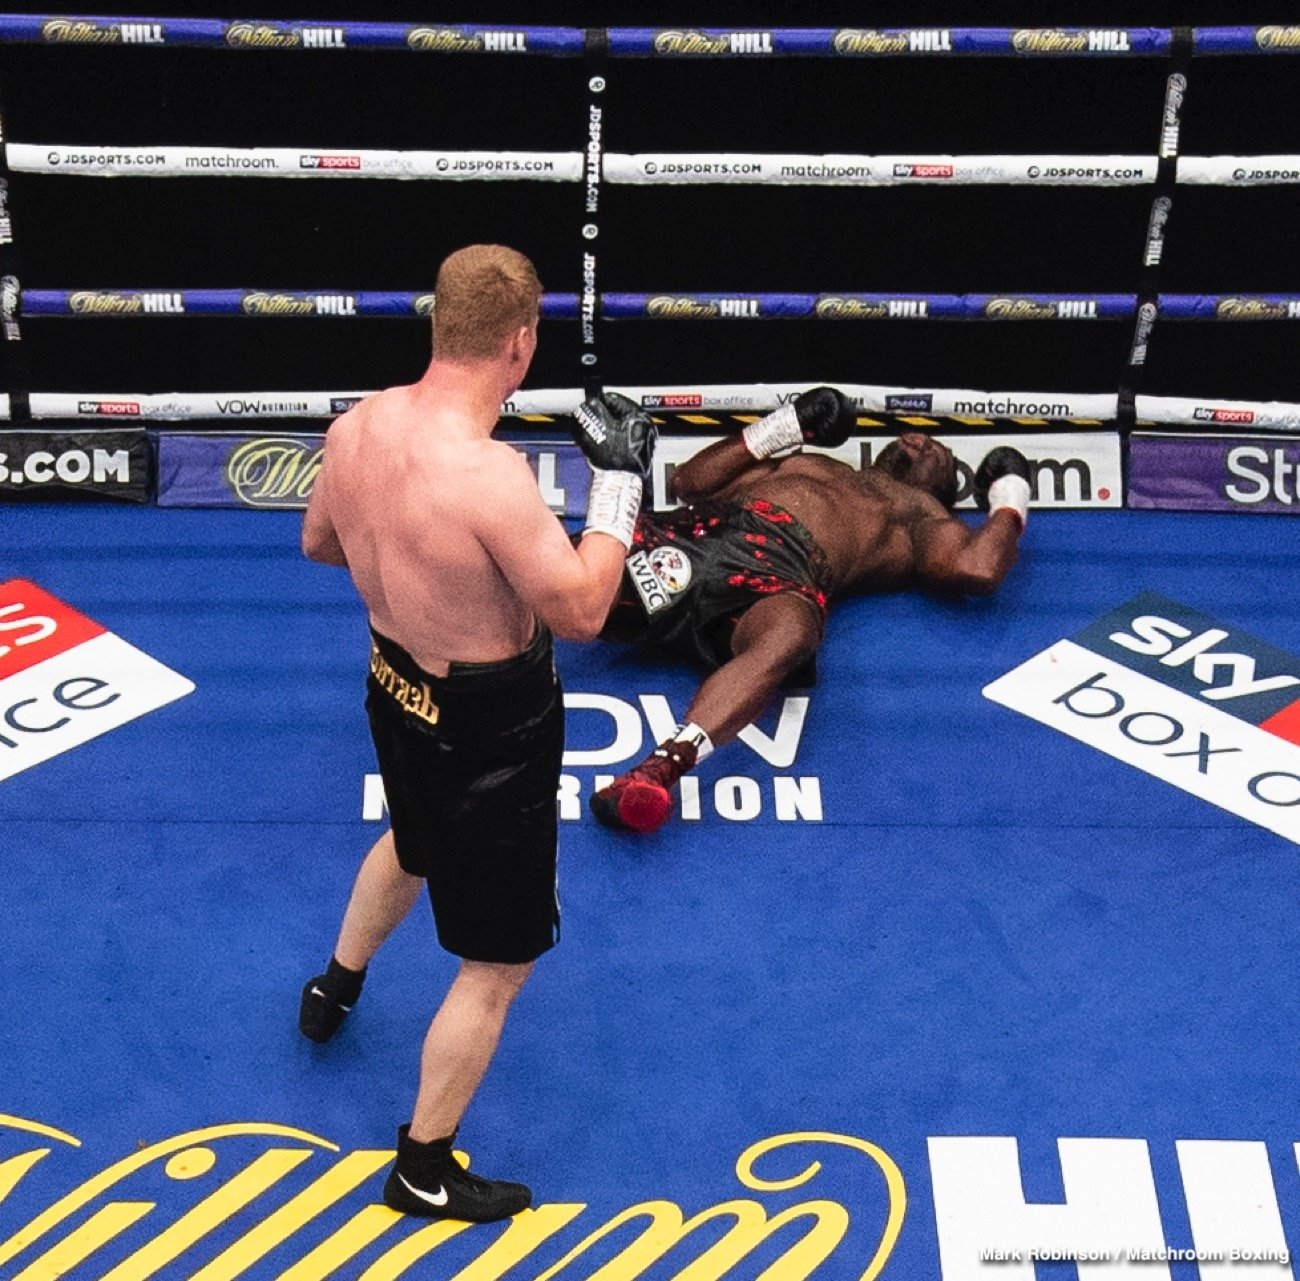 Whyte vs Povetkin 2: Is this the end of the line for Dillian?